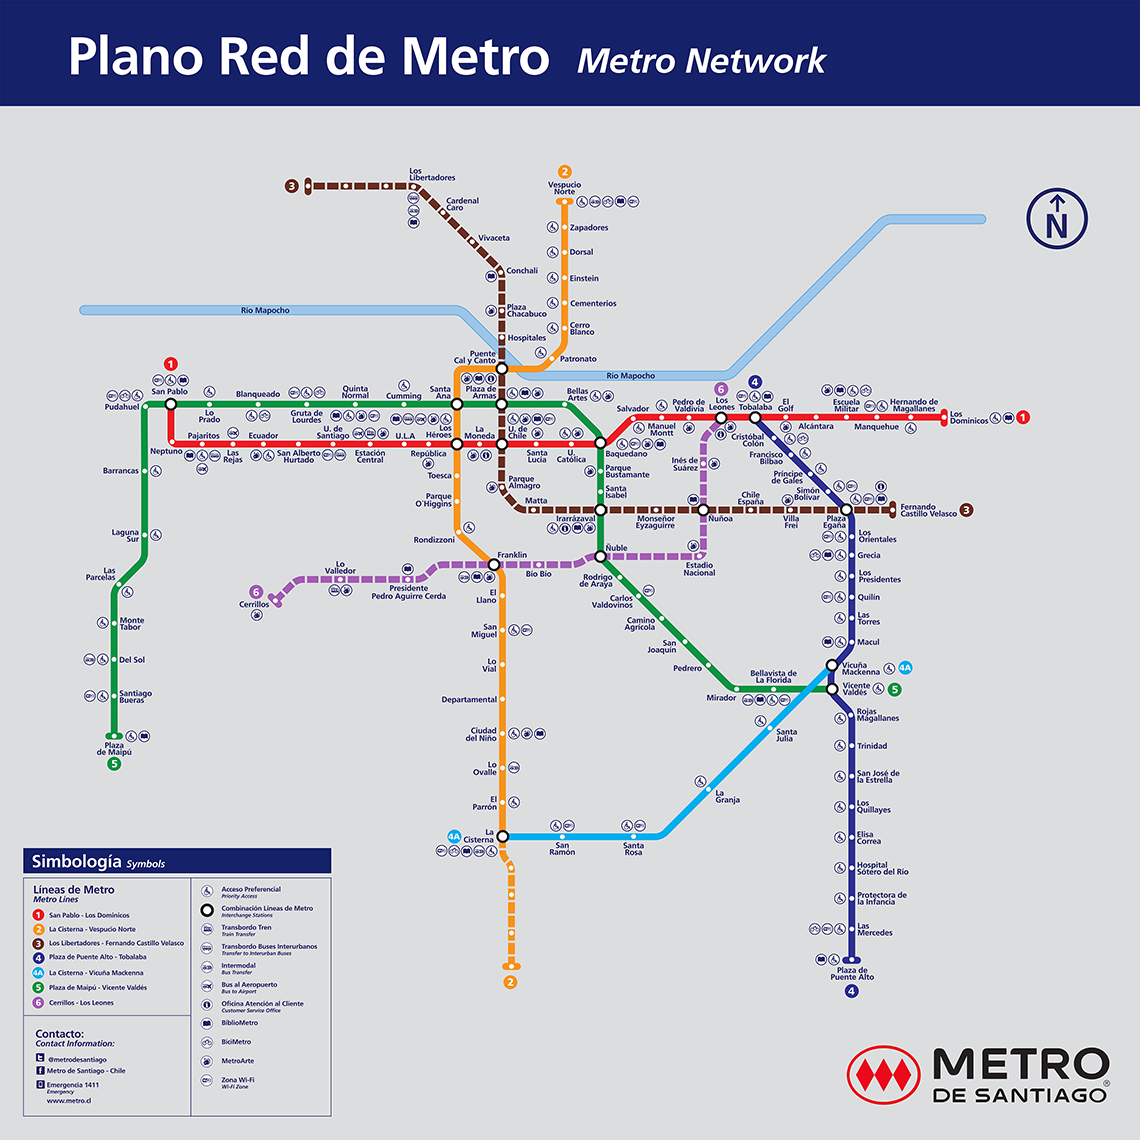 20170323-plano-metro-red.png